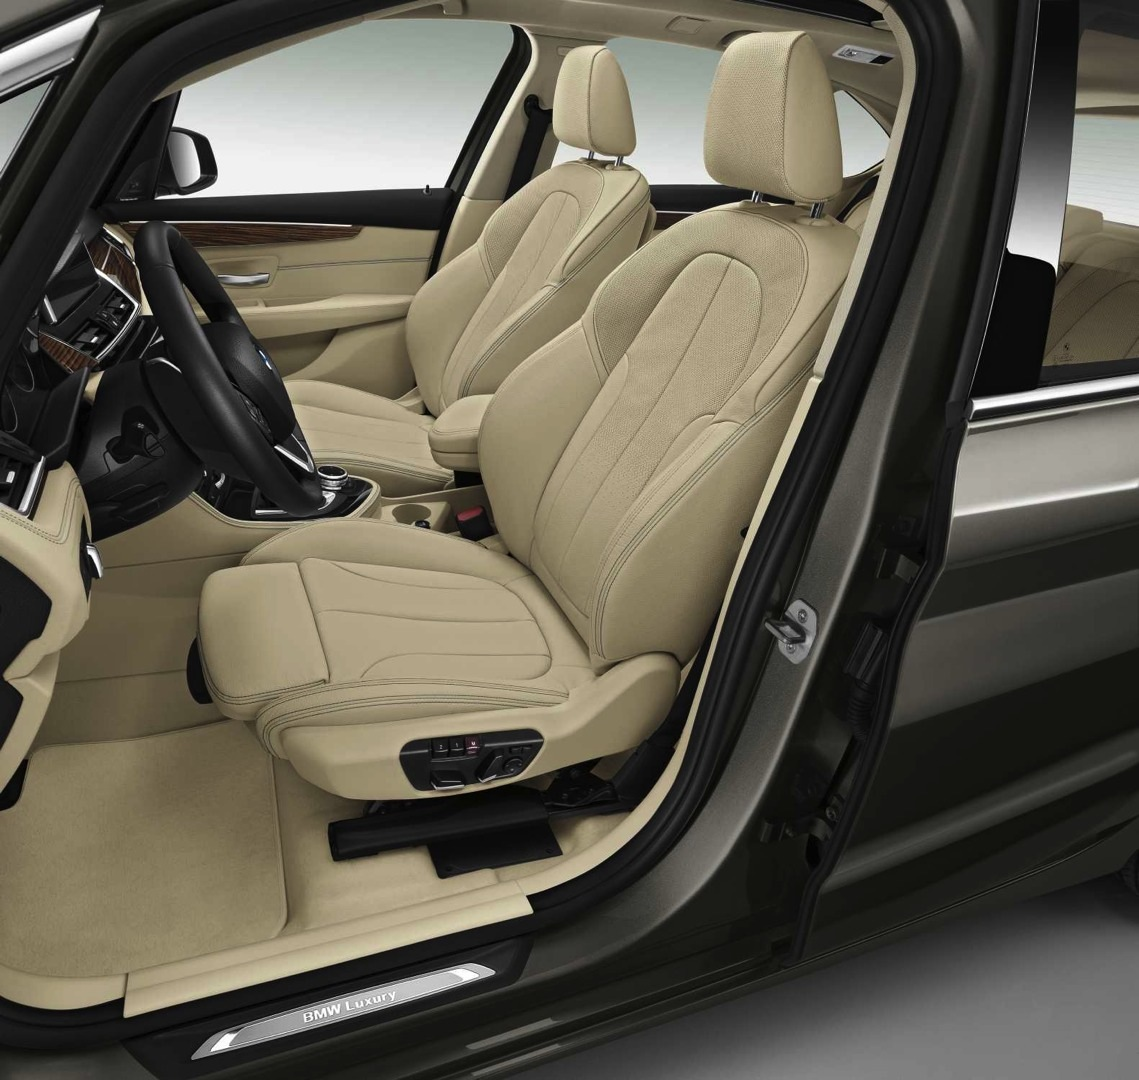 Bmw 2 Series Interior: How To Clean And Detail A Car Interior